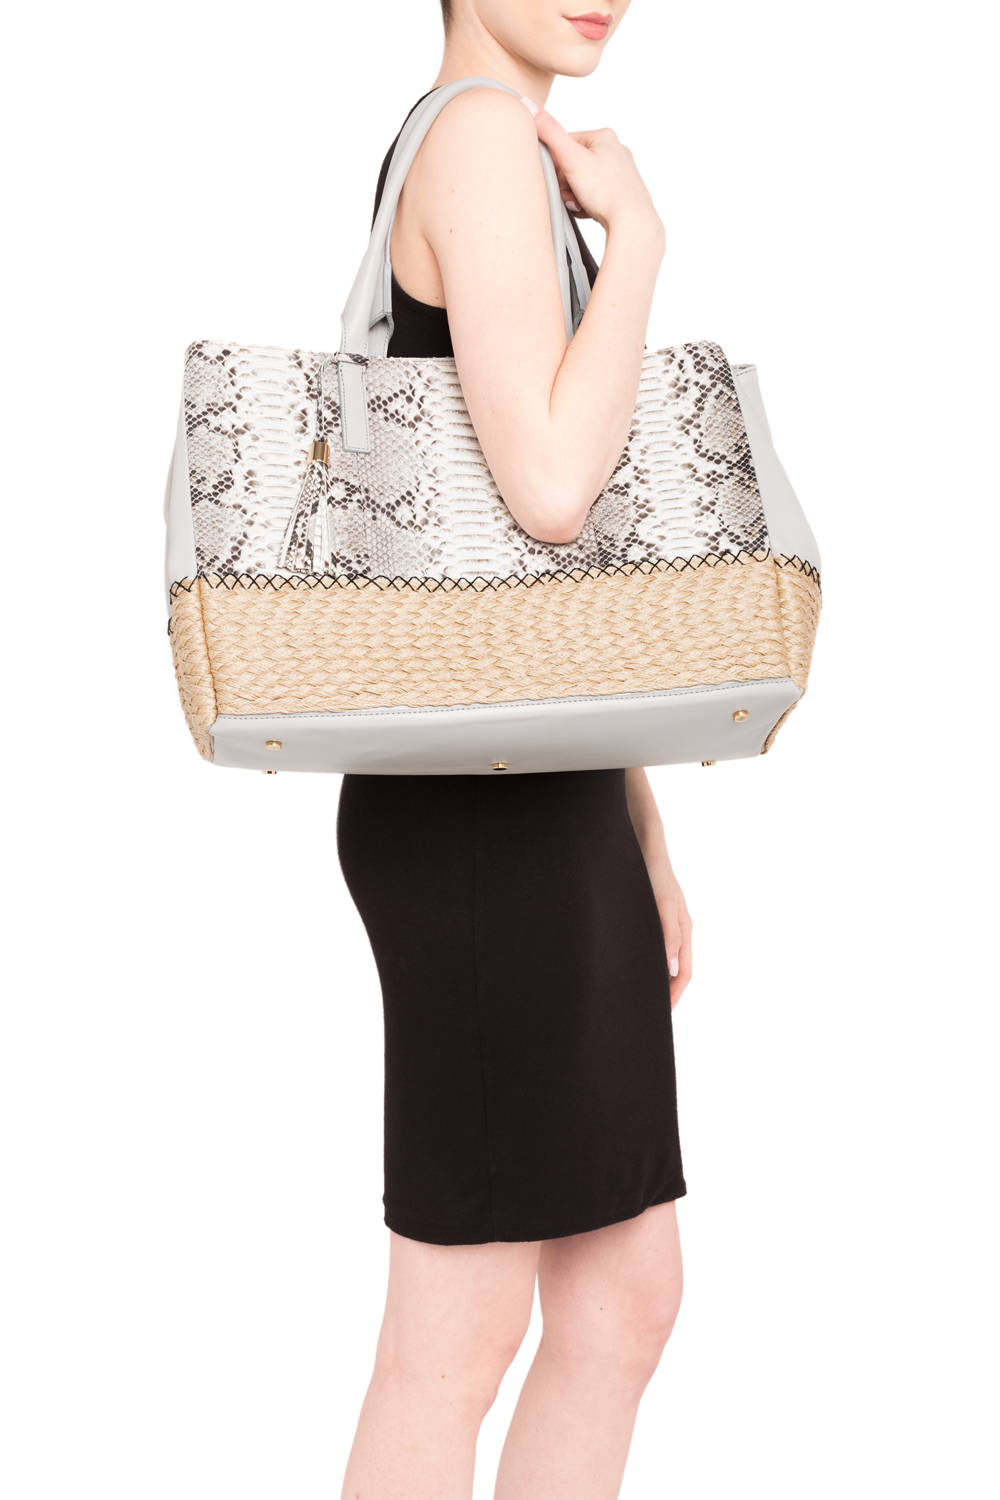 Mel Boteri | Harbor Grey Python Leather & Espadrille 'Ellis' Tote | Model View